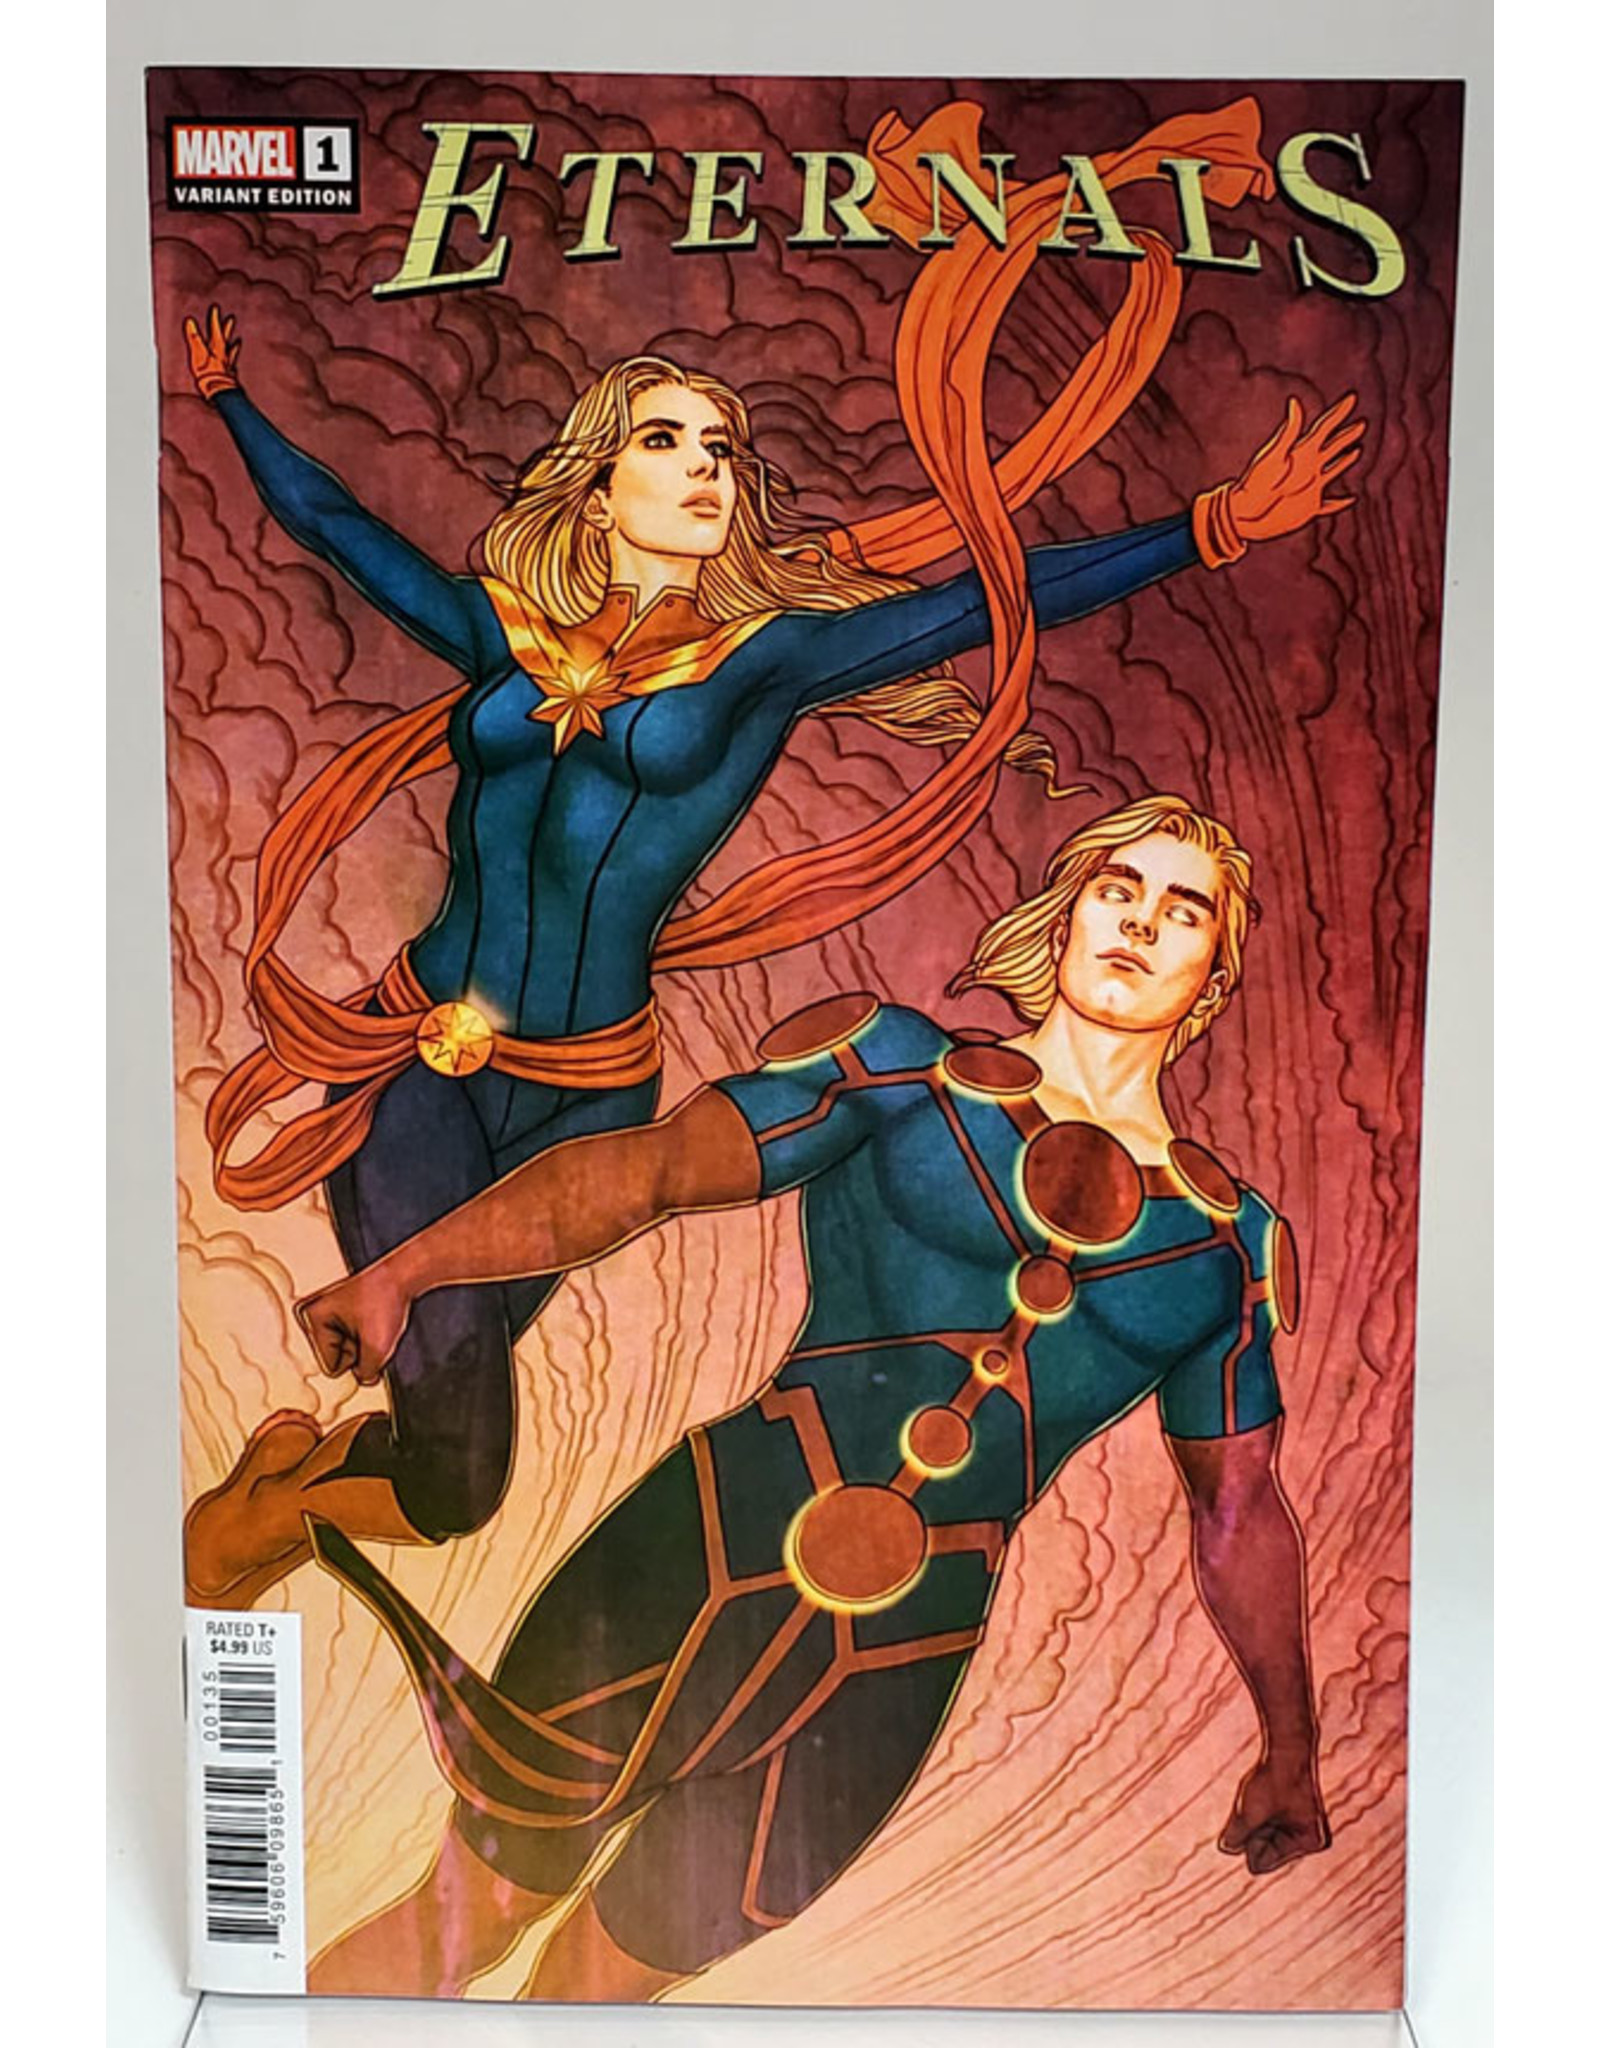 MARVEL COMICS ETERNALS #1 1:100 FRISON VAR